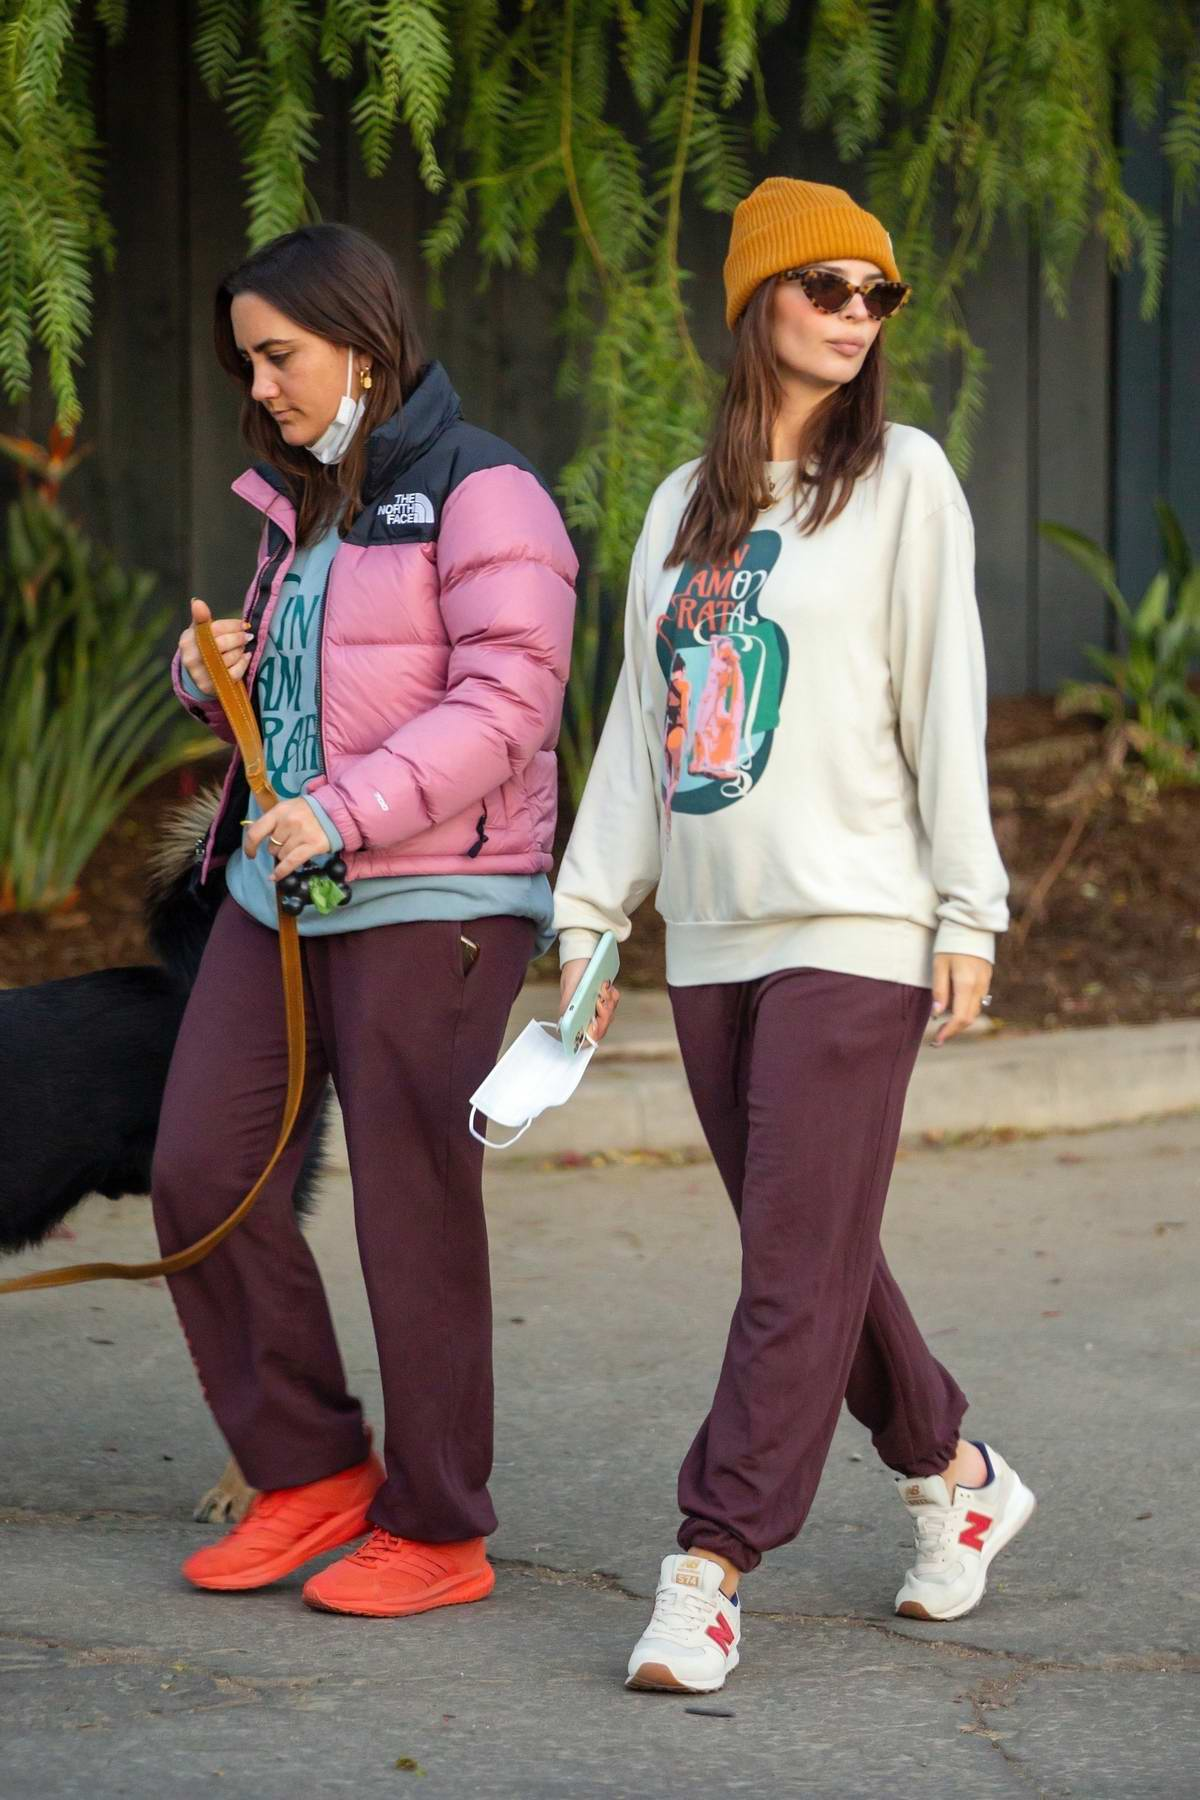 Emily Ratajkowski steps out for a short stroll with a friend and her dog in Los Angeles